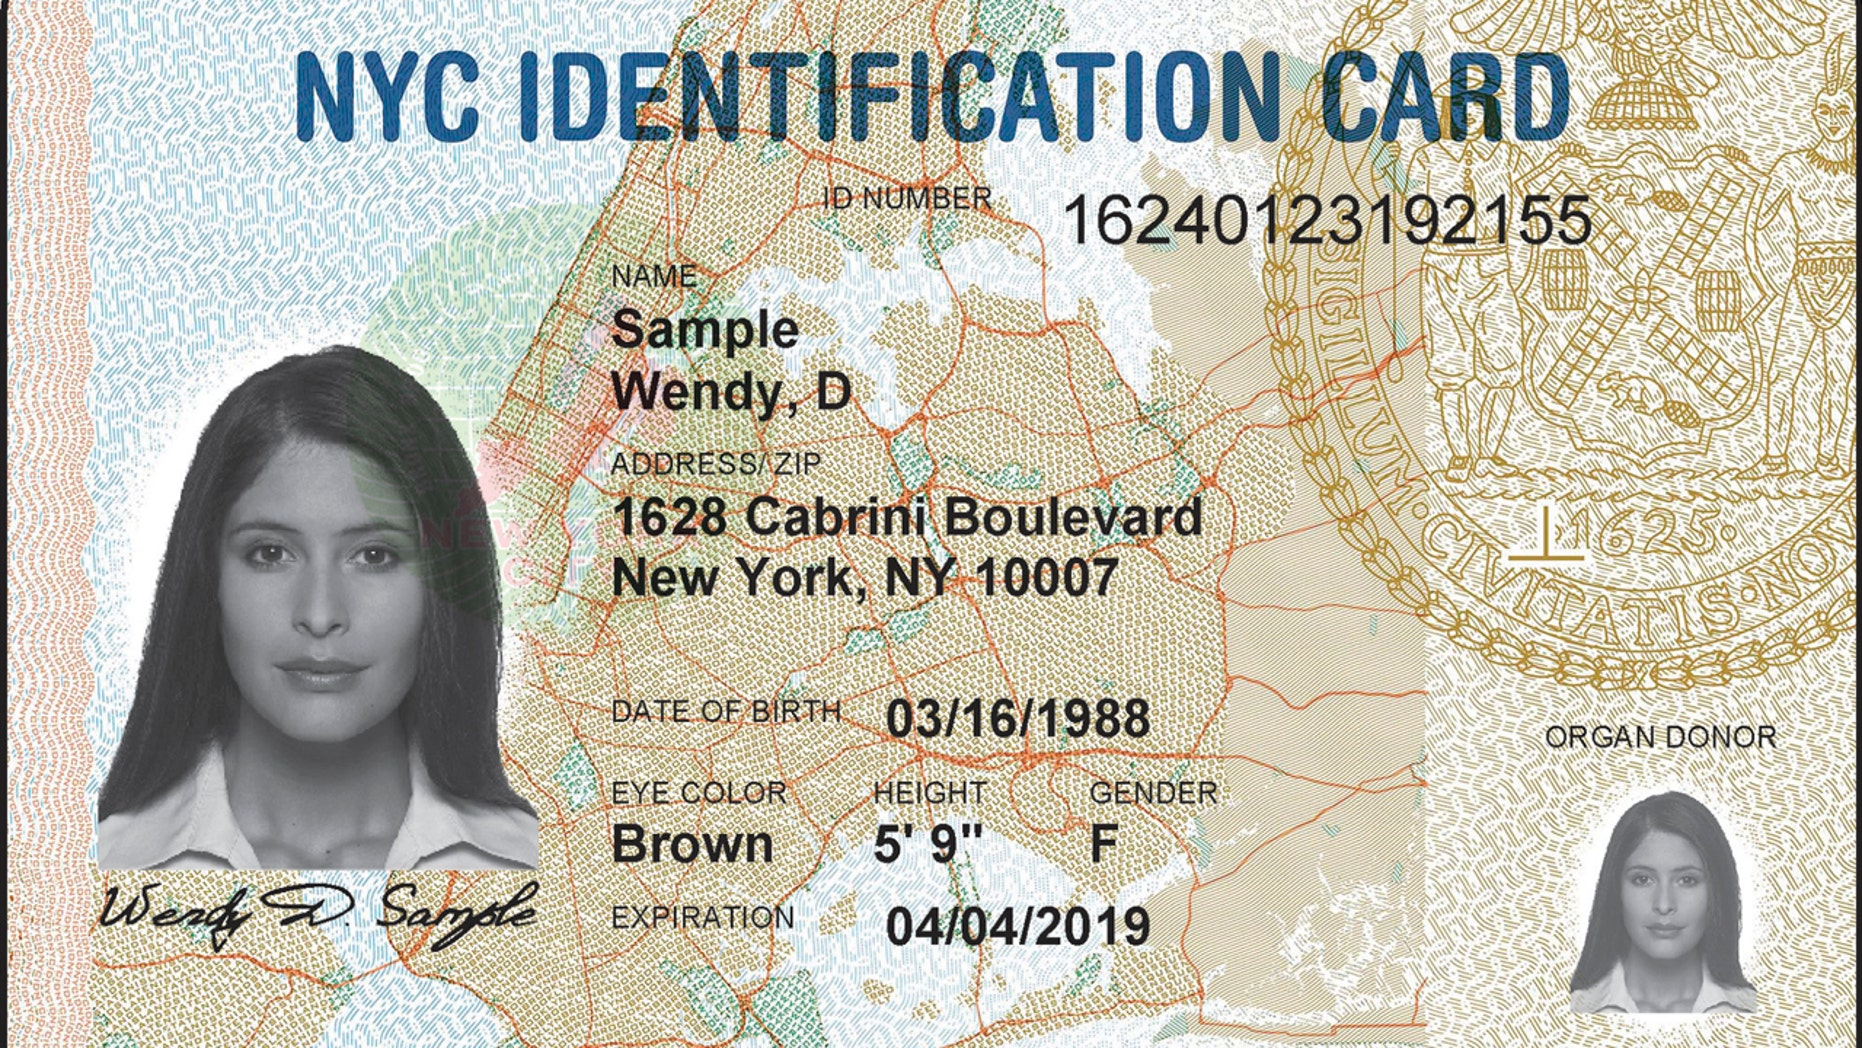 This undated image provided by New York City Hall shows a sample ID card issued by the city. Advocates of last year's municipal ID card program said it would help people living in the country illegally venture out of the shadows. Now some fear it could instead expose them to deportation. Since Donald Trump's presidential election victory, the city is considering destroying the cardholders' personal records. (New York City Hall via AP)